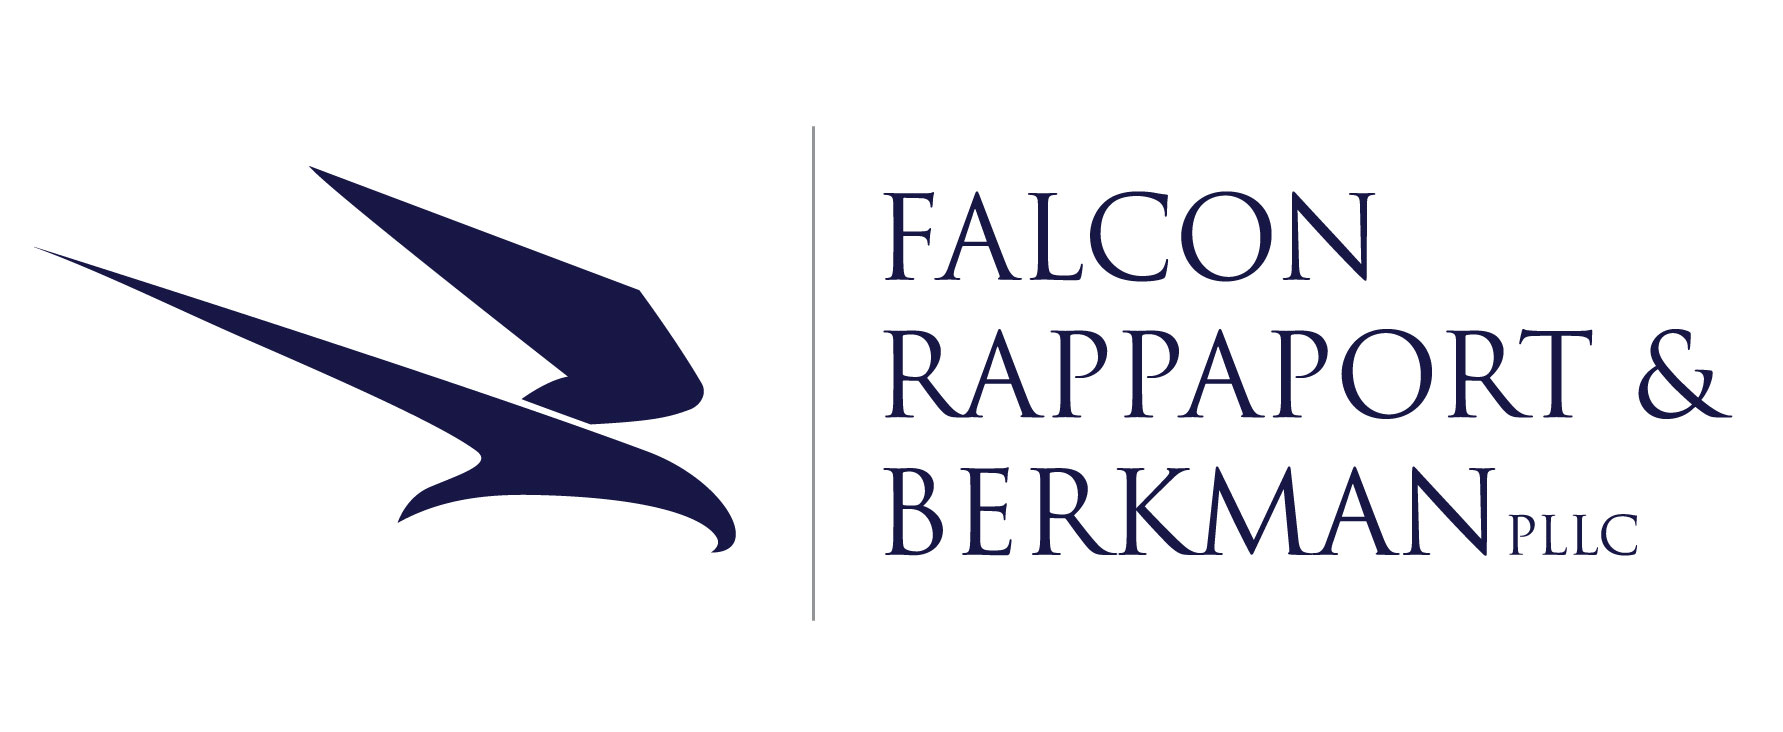 Falconrappaport logo